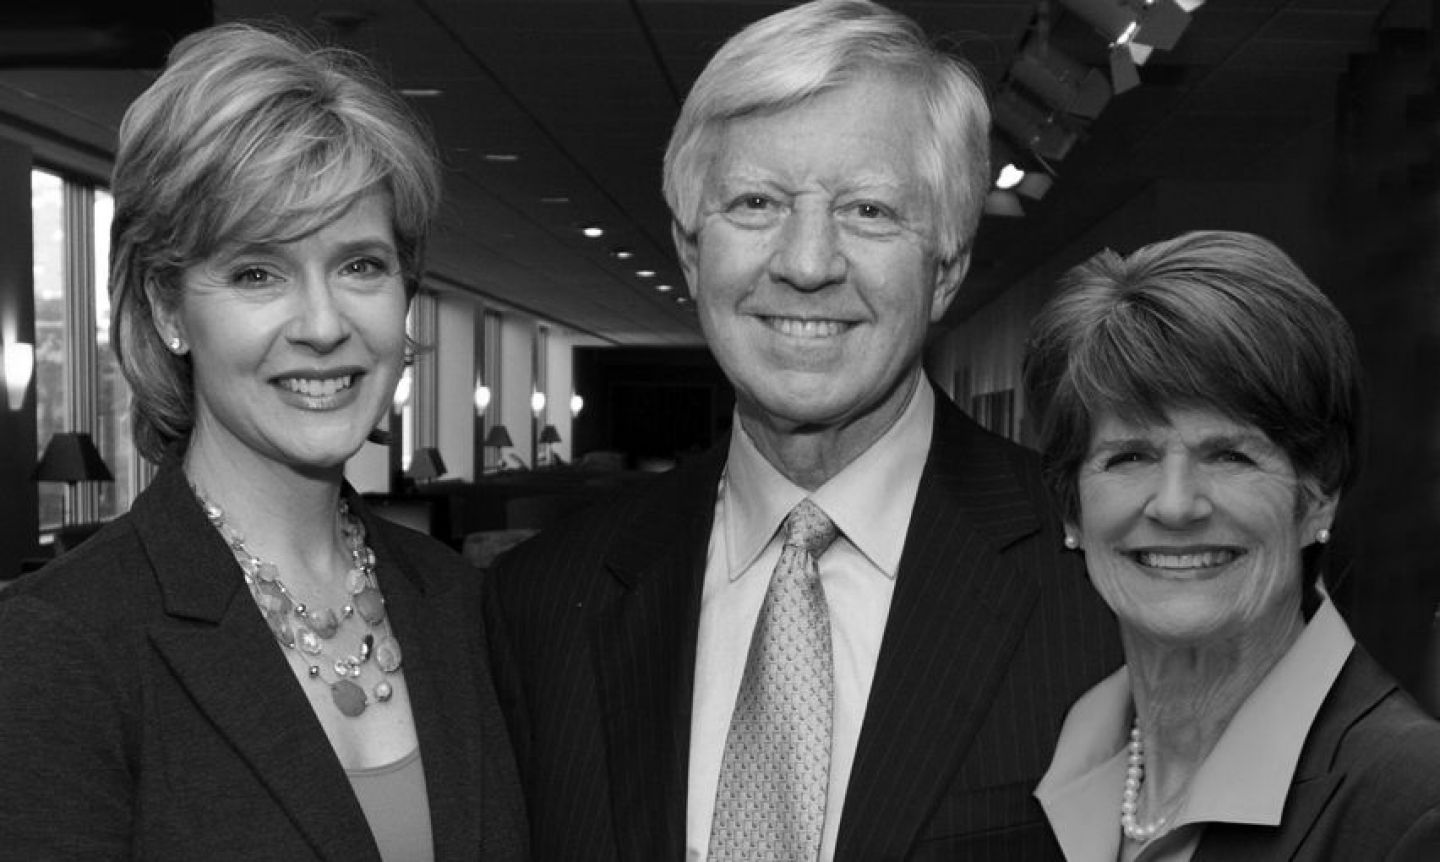 Acclaimed innovators and leadership experts Bill and Penny George join broadcast journalist Cathy Wurzer in recognition of St. Catherine University's Master of Arts in Organizational Leadership (MAOL) program's 30 years of leadership education.